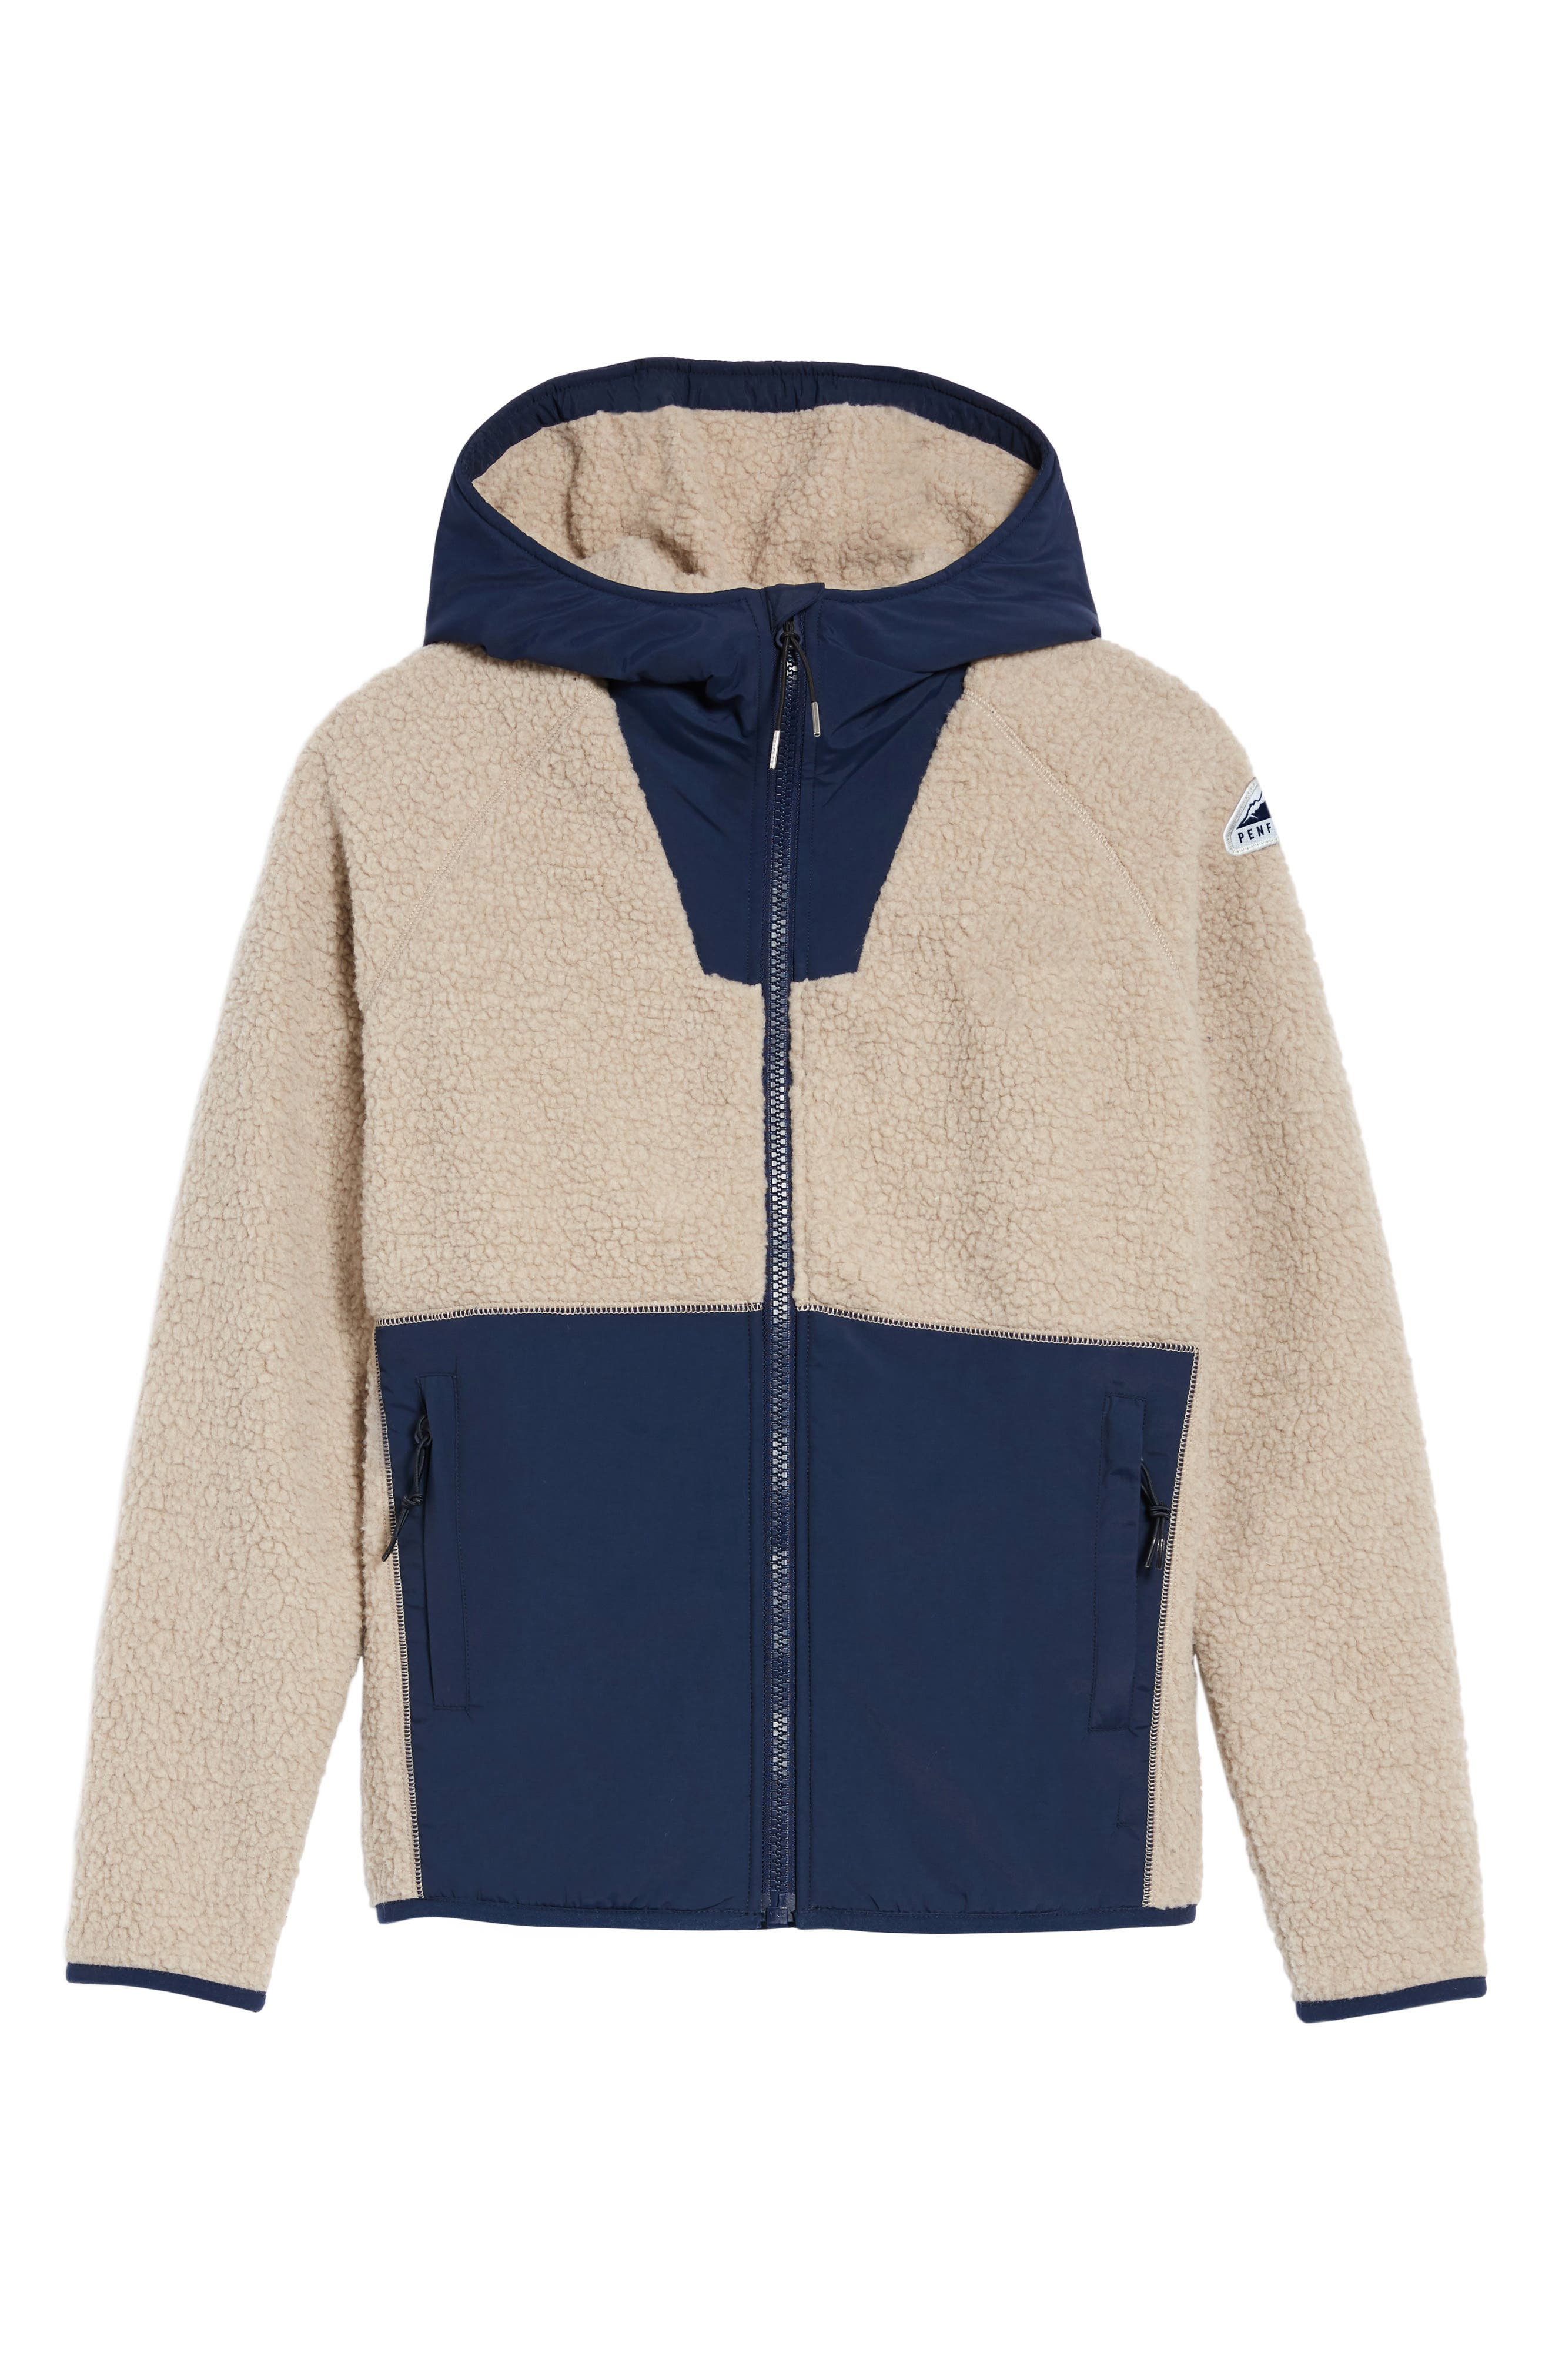 Vaughn Fleece Jacket,                             Alternate thumbnail 5, color,                             252